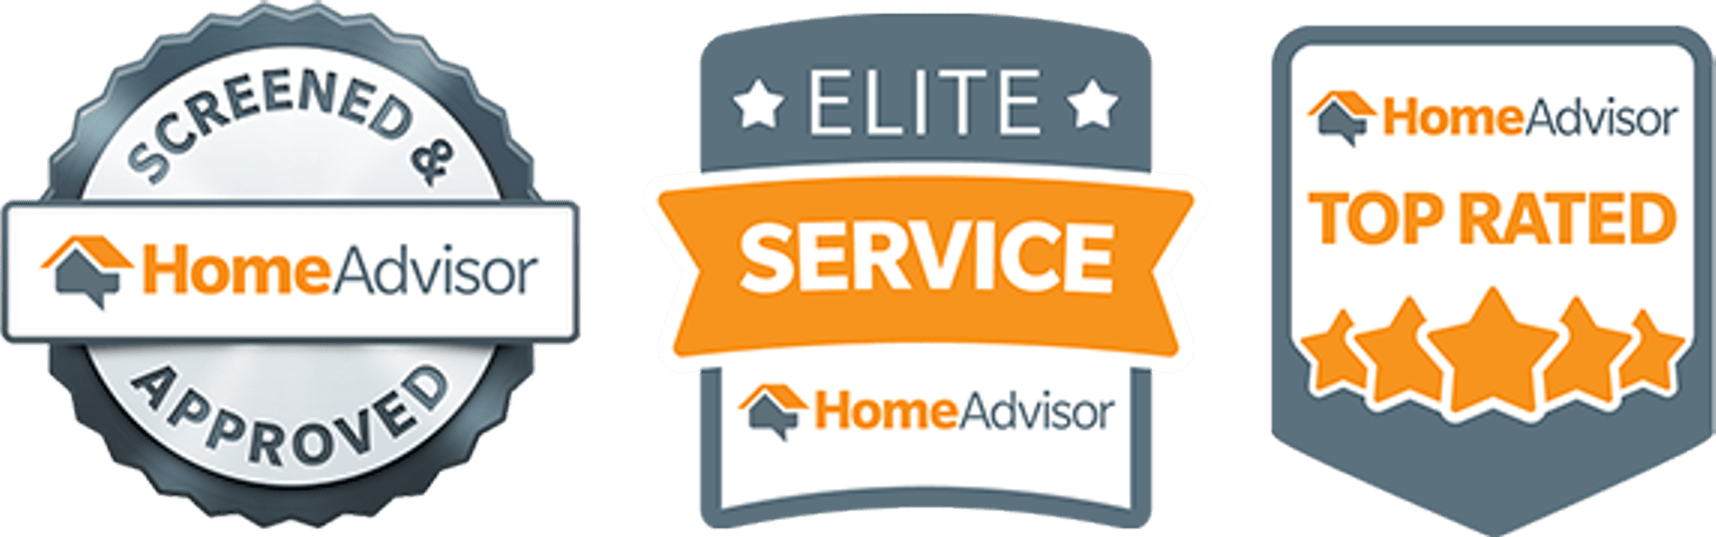 Home Adviser Top Rated and providing Elite Service on you Cooling repair in Winston Salem NC.